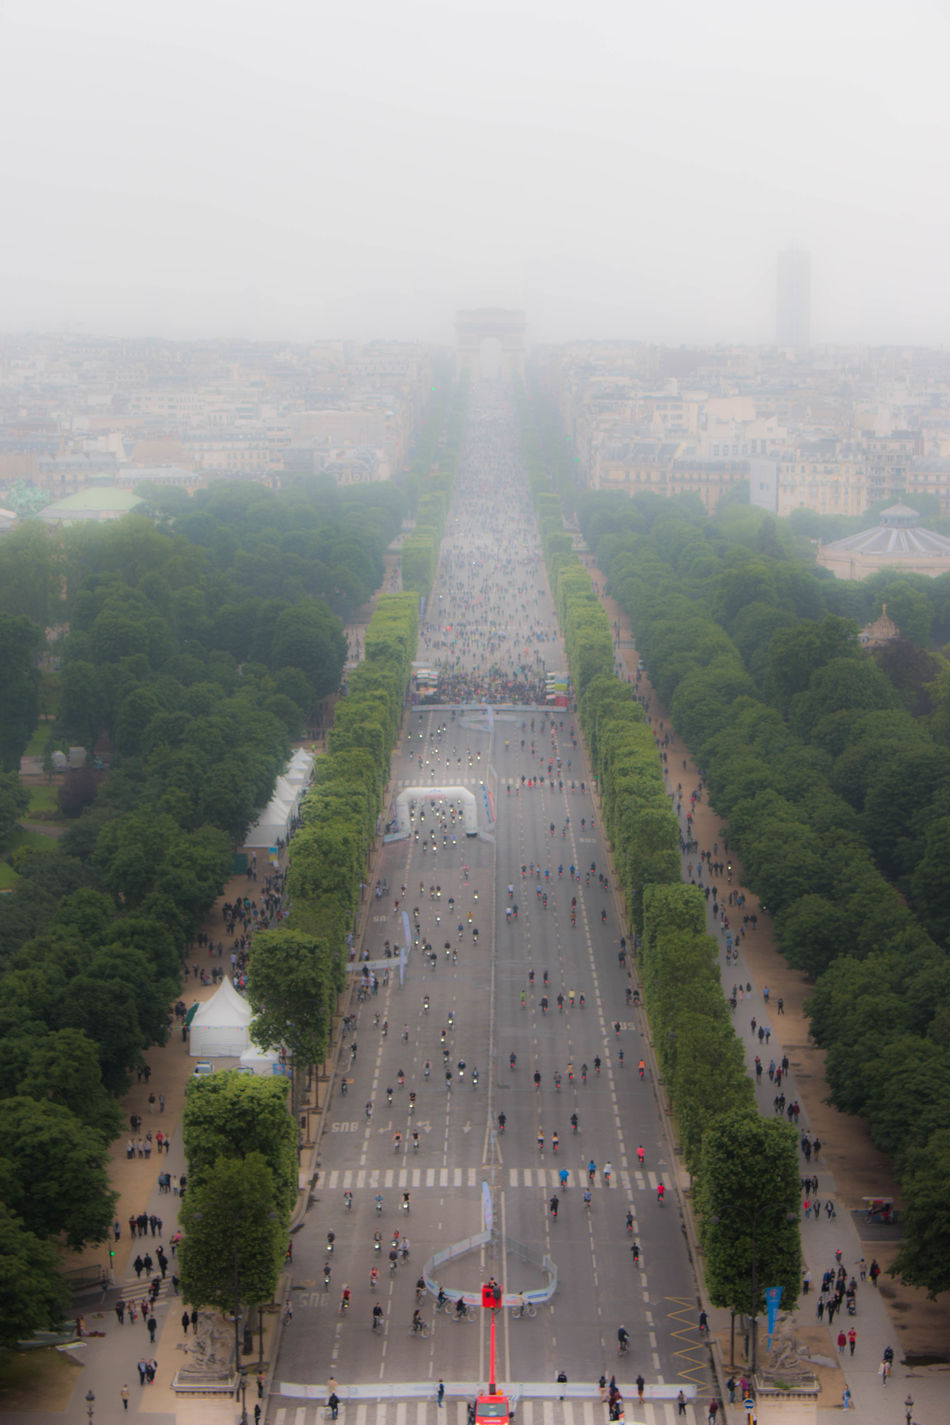 Architecture Building Exterior Built Structure Champs Elysees Champs-Elysée Champs-Élysées  Champselysées City Cityscape Crowd Day Fog Large Group Of People Modern Outdoors Paris People Real People Sky Skyscraper Travel Tree